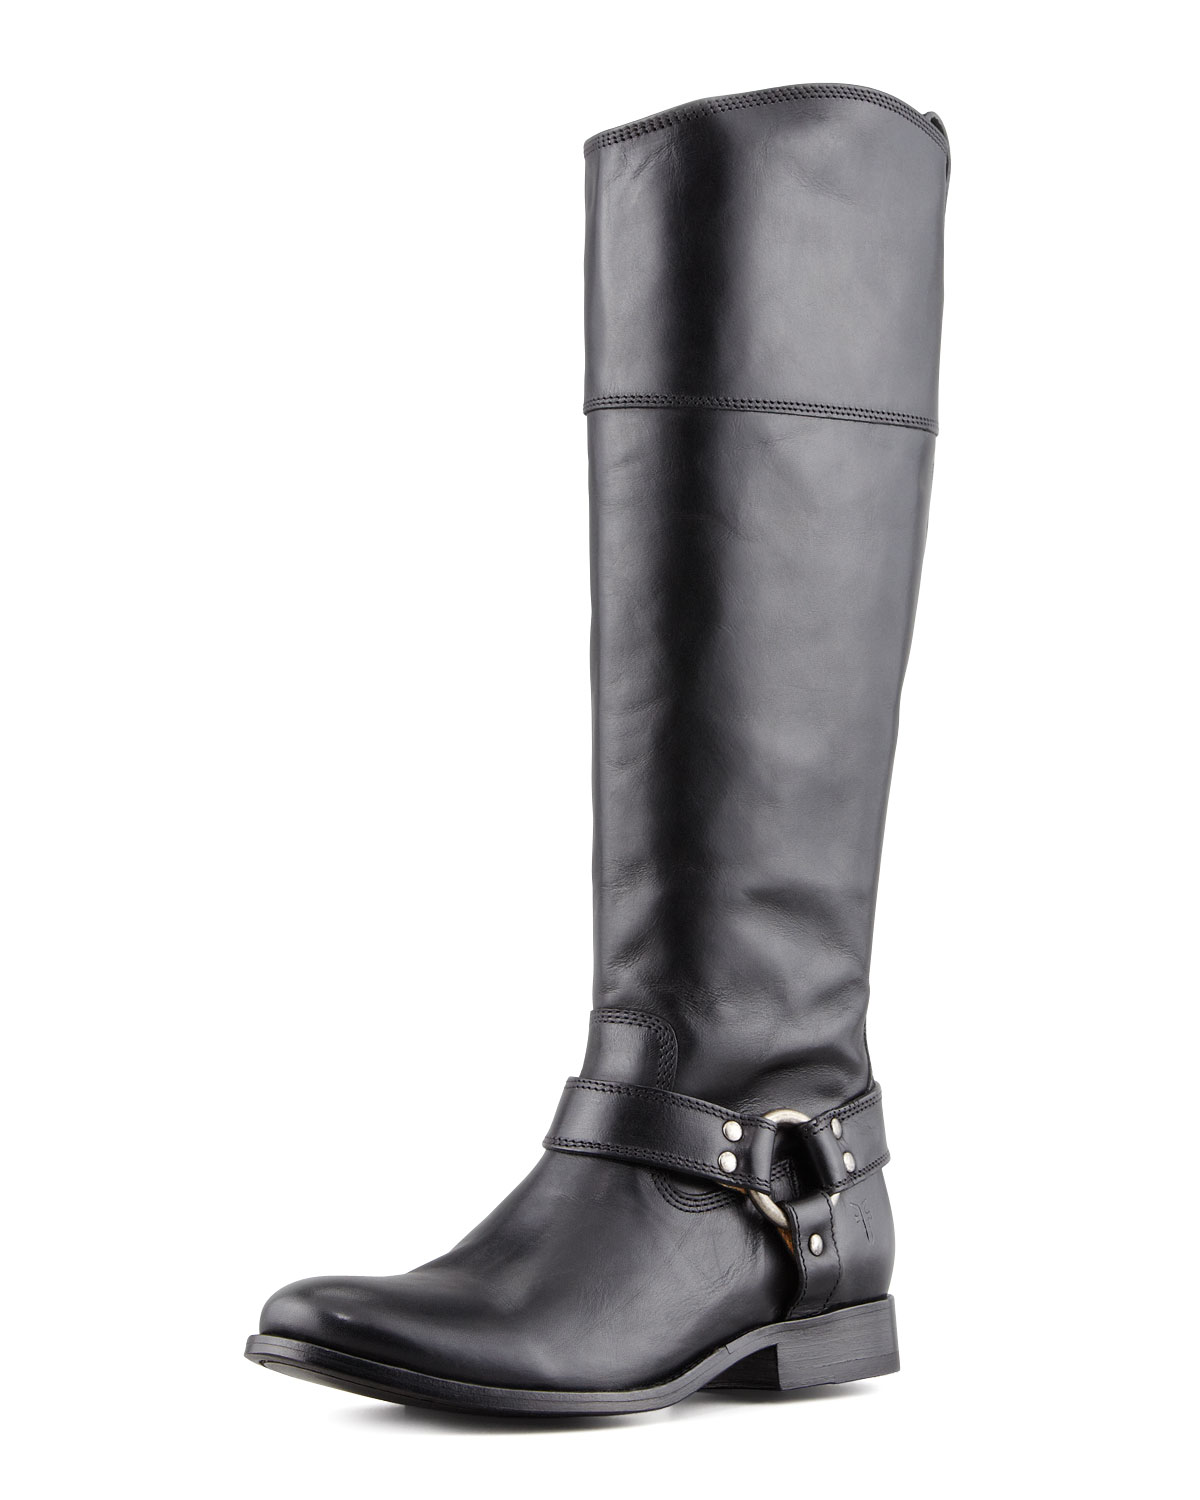 fb2e2ed51170 Melissa Harness Riding Extended Calf Boot